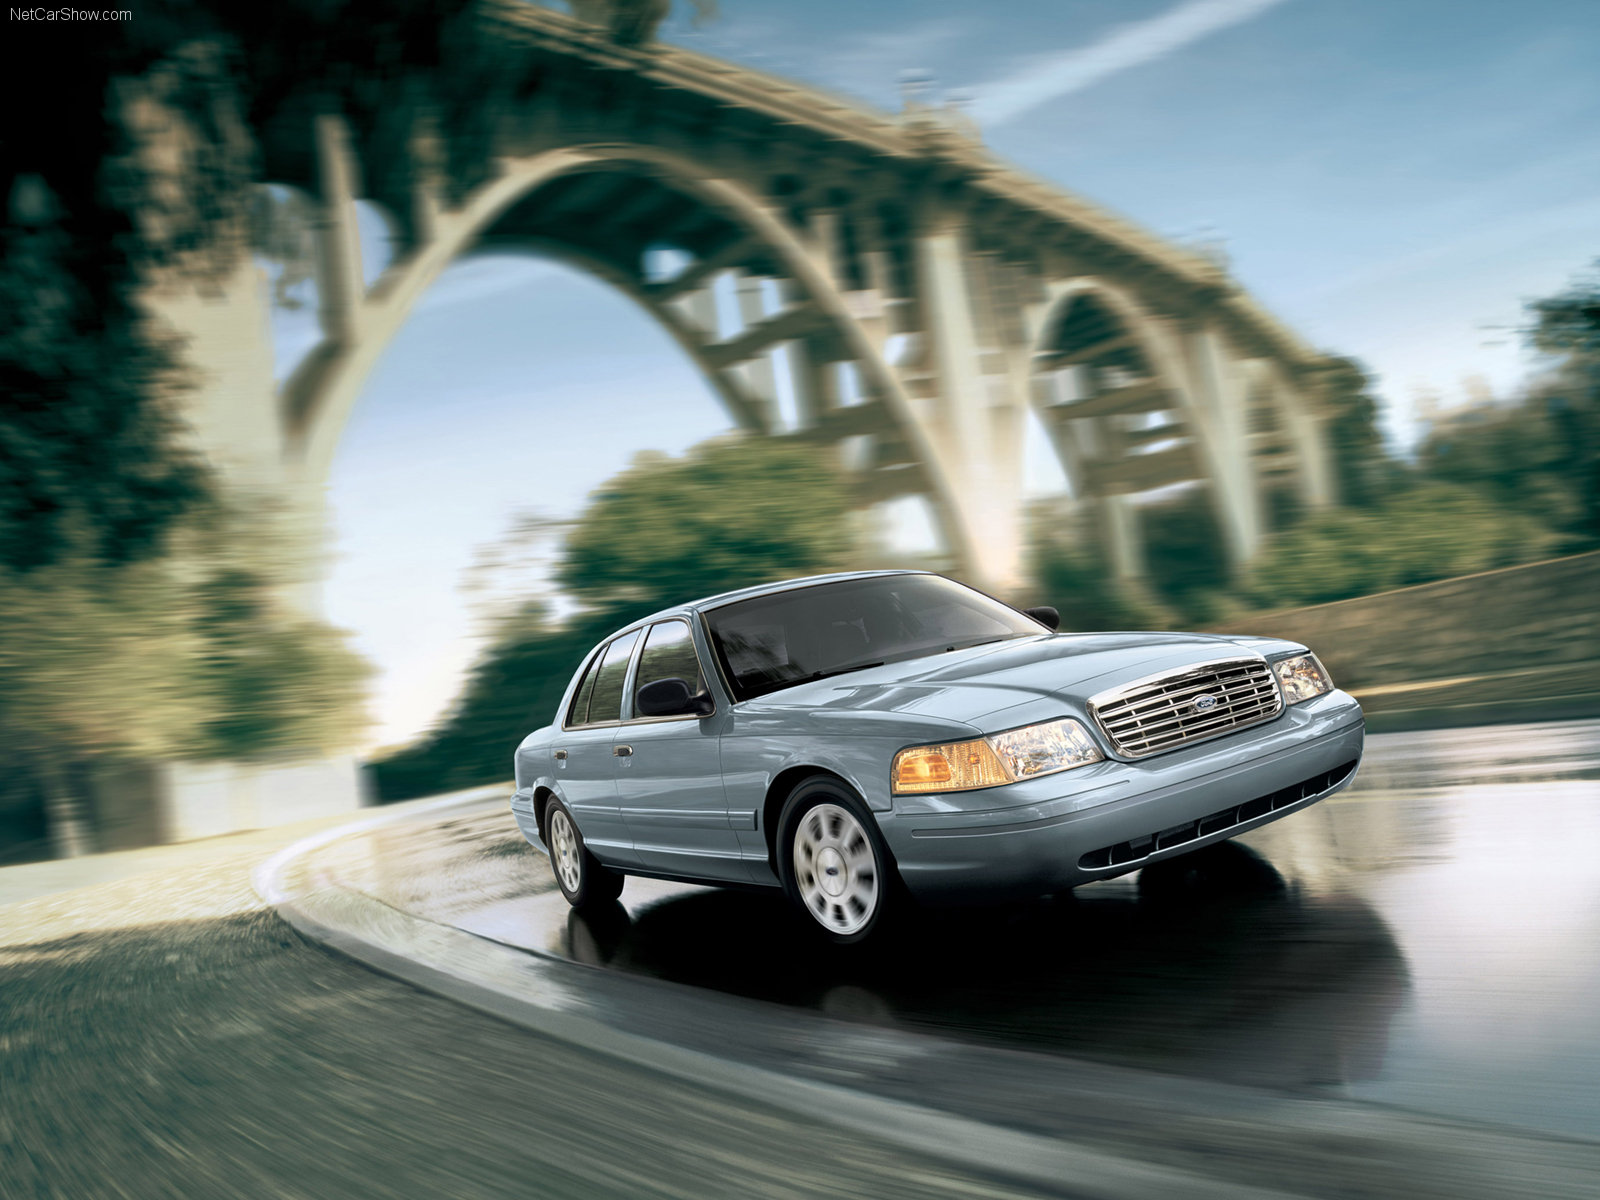 Ford Crown Victoria photos  PhotoGallery with 26 pics CarsBasecom